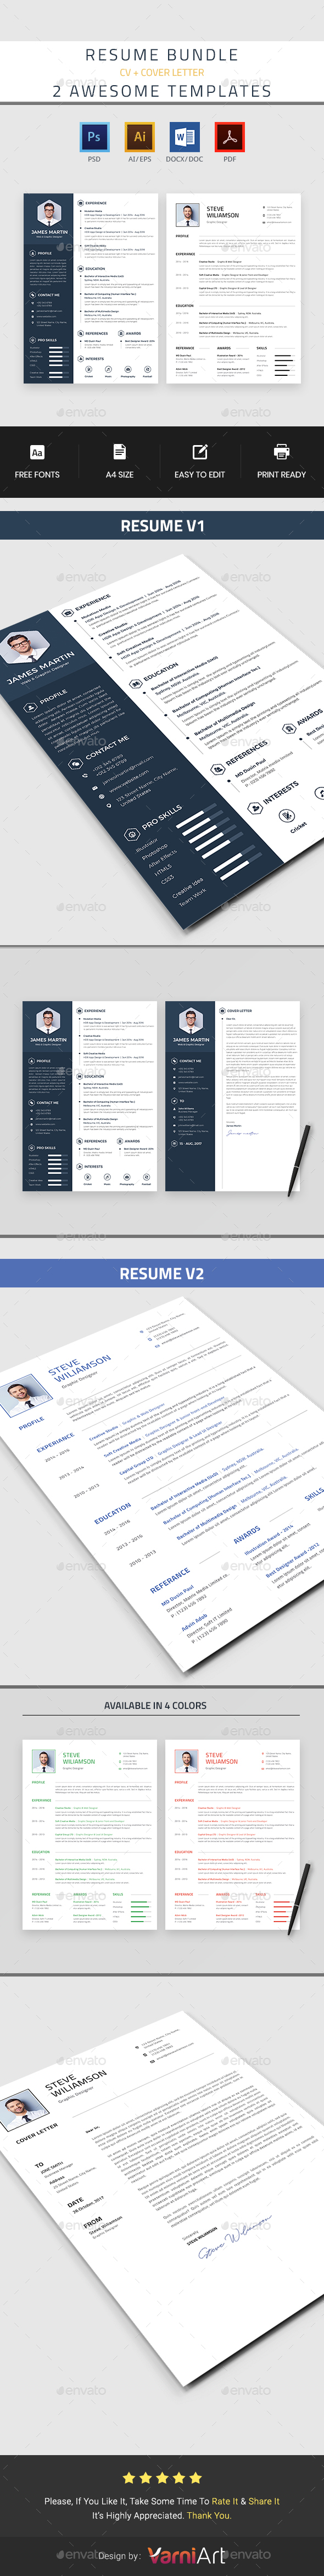 resume templates from graphicriver